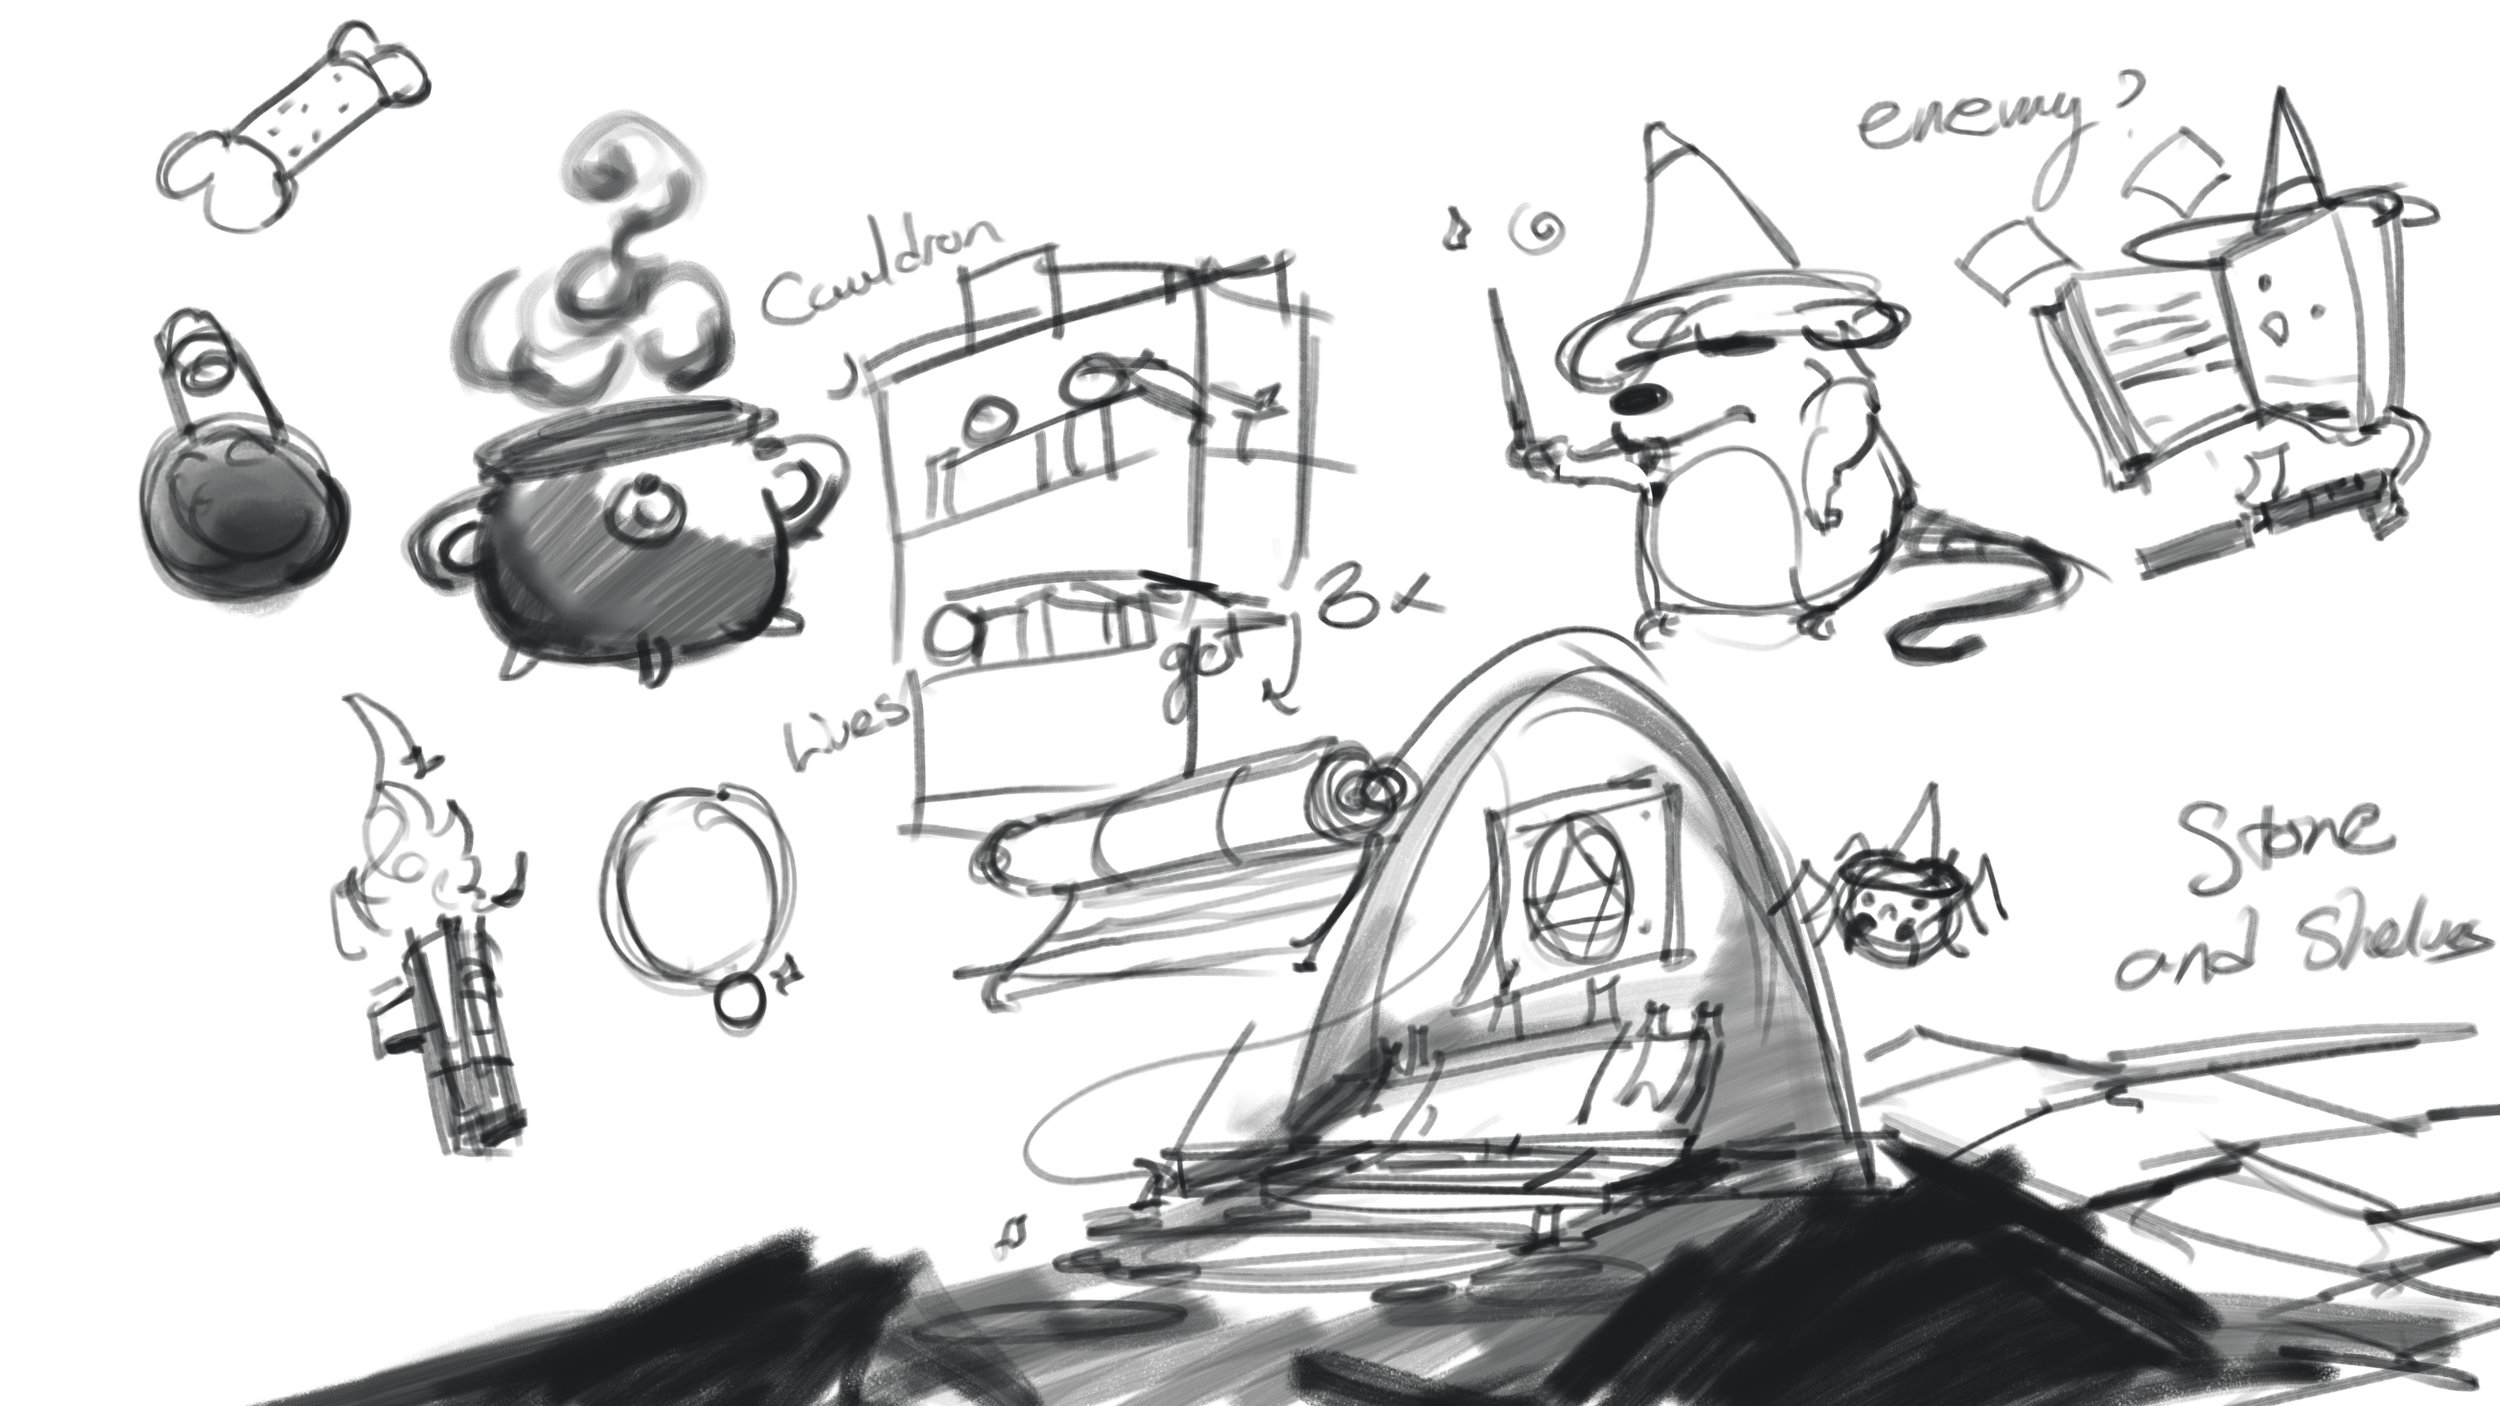 Sketches for props and locations